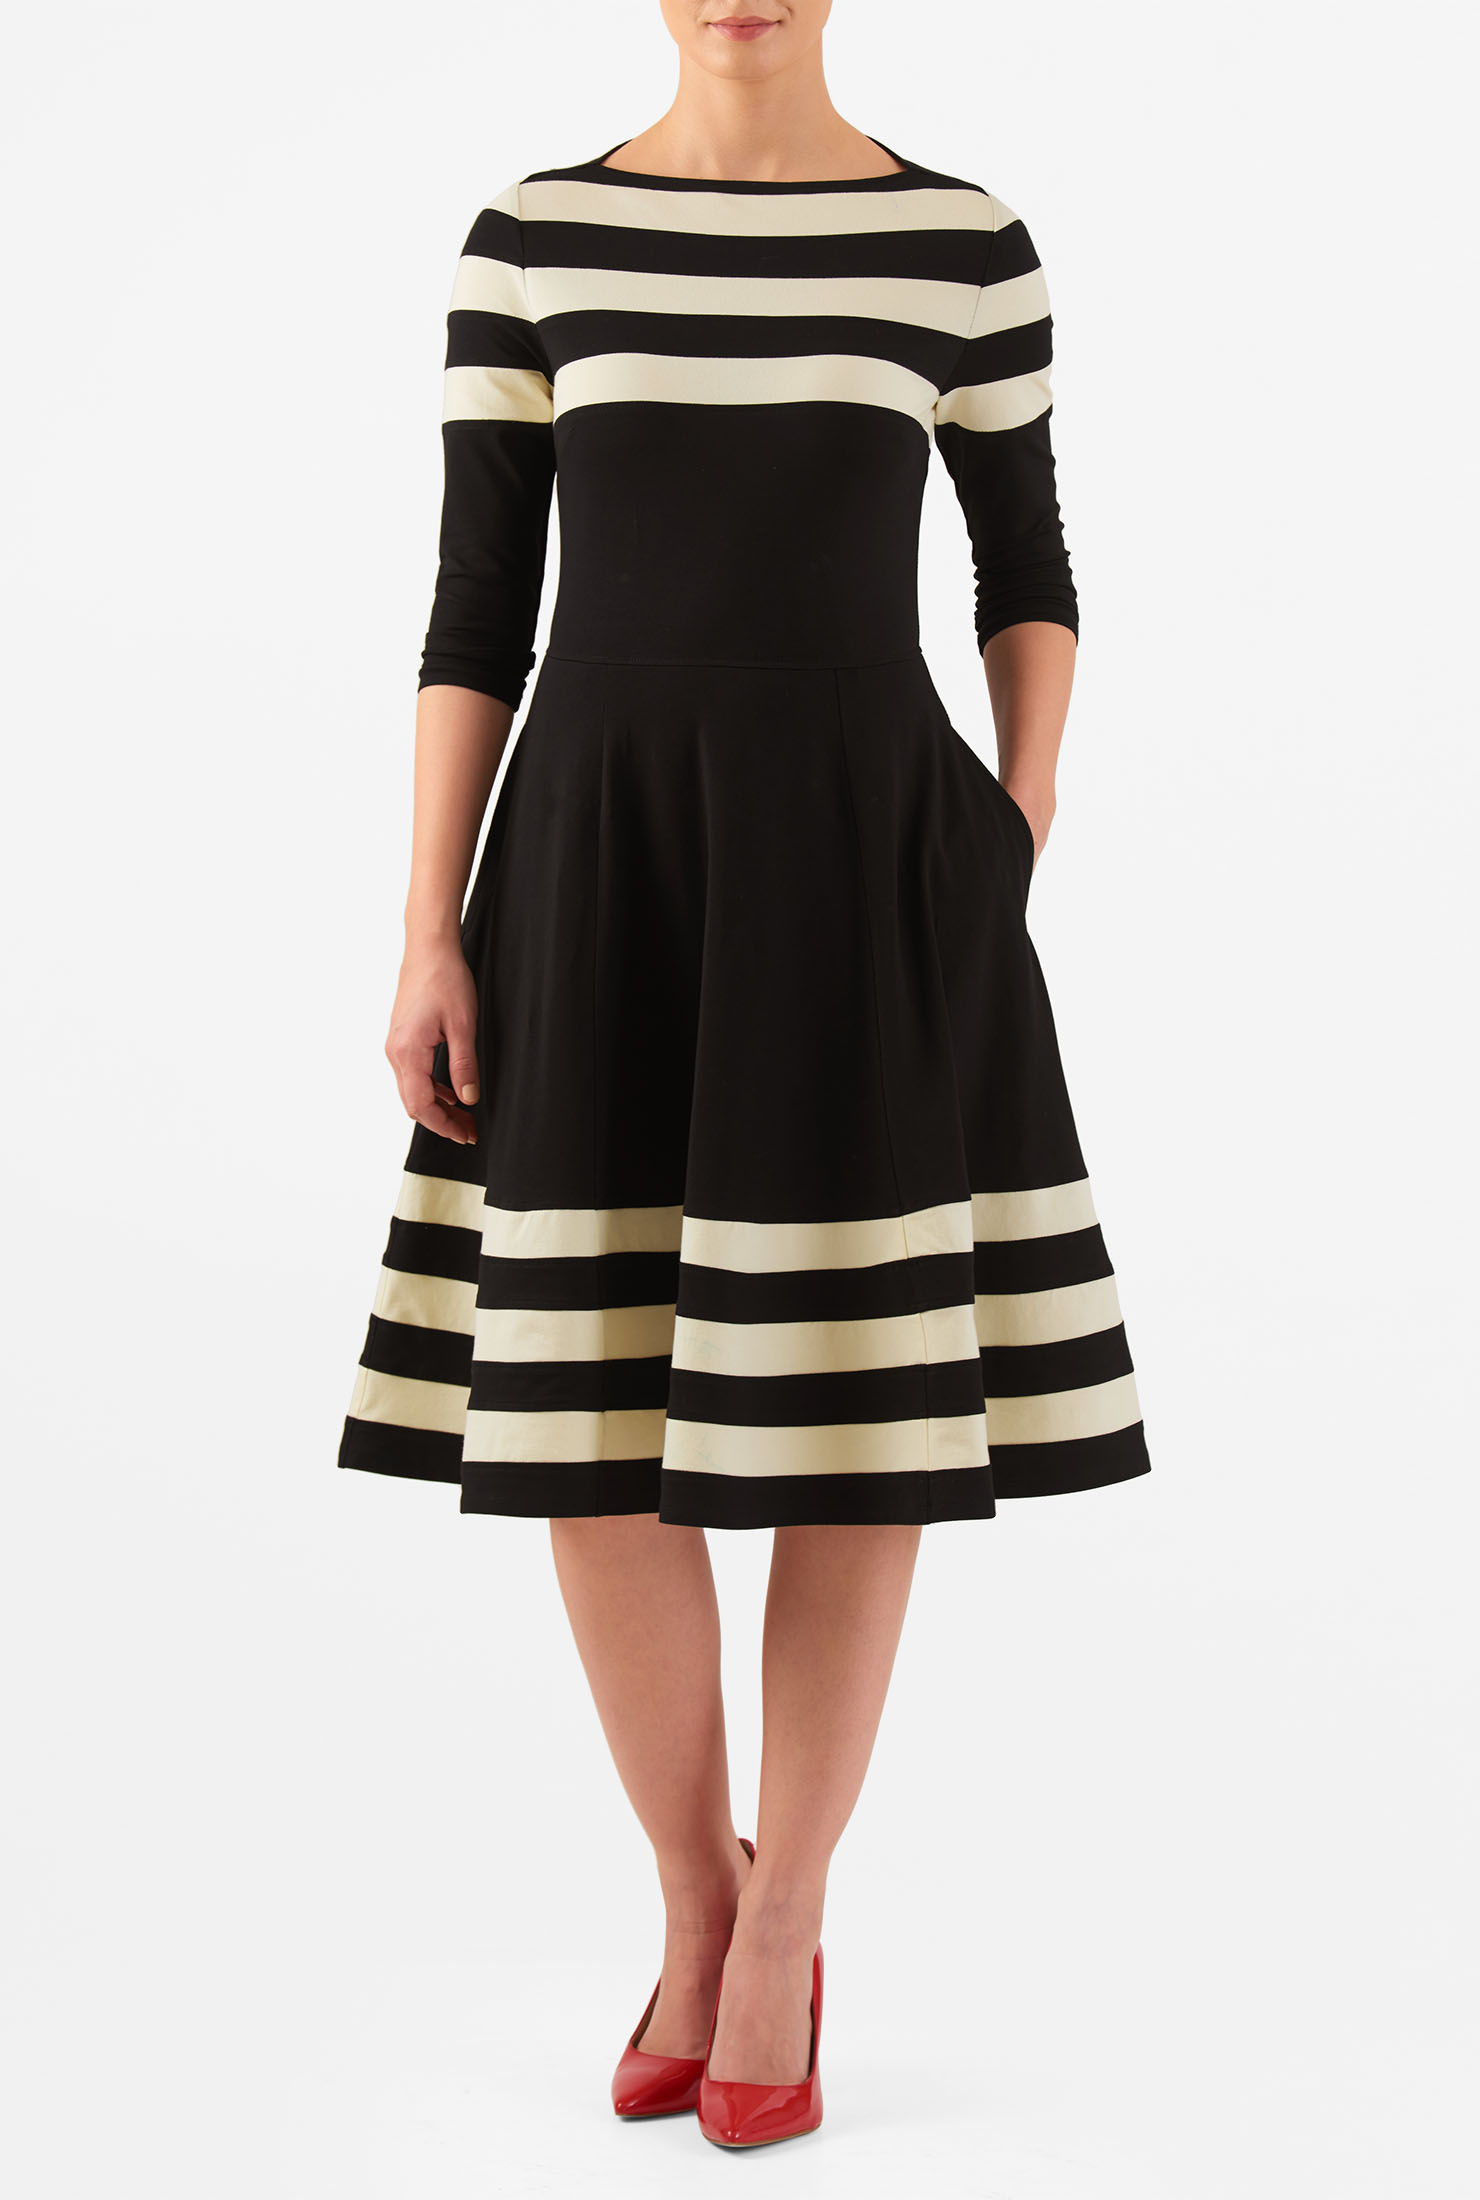 Eshakti Womens Banded Stripe Cotton Knit Fit-and-flare Dress